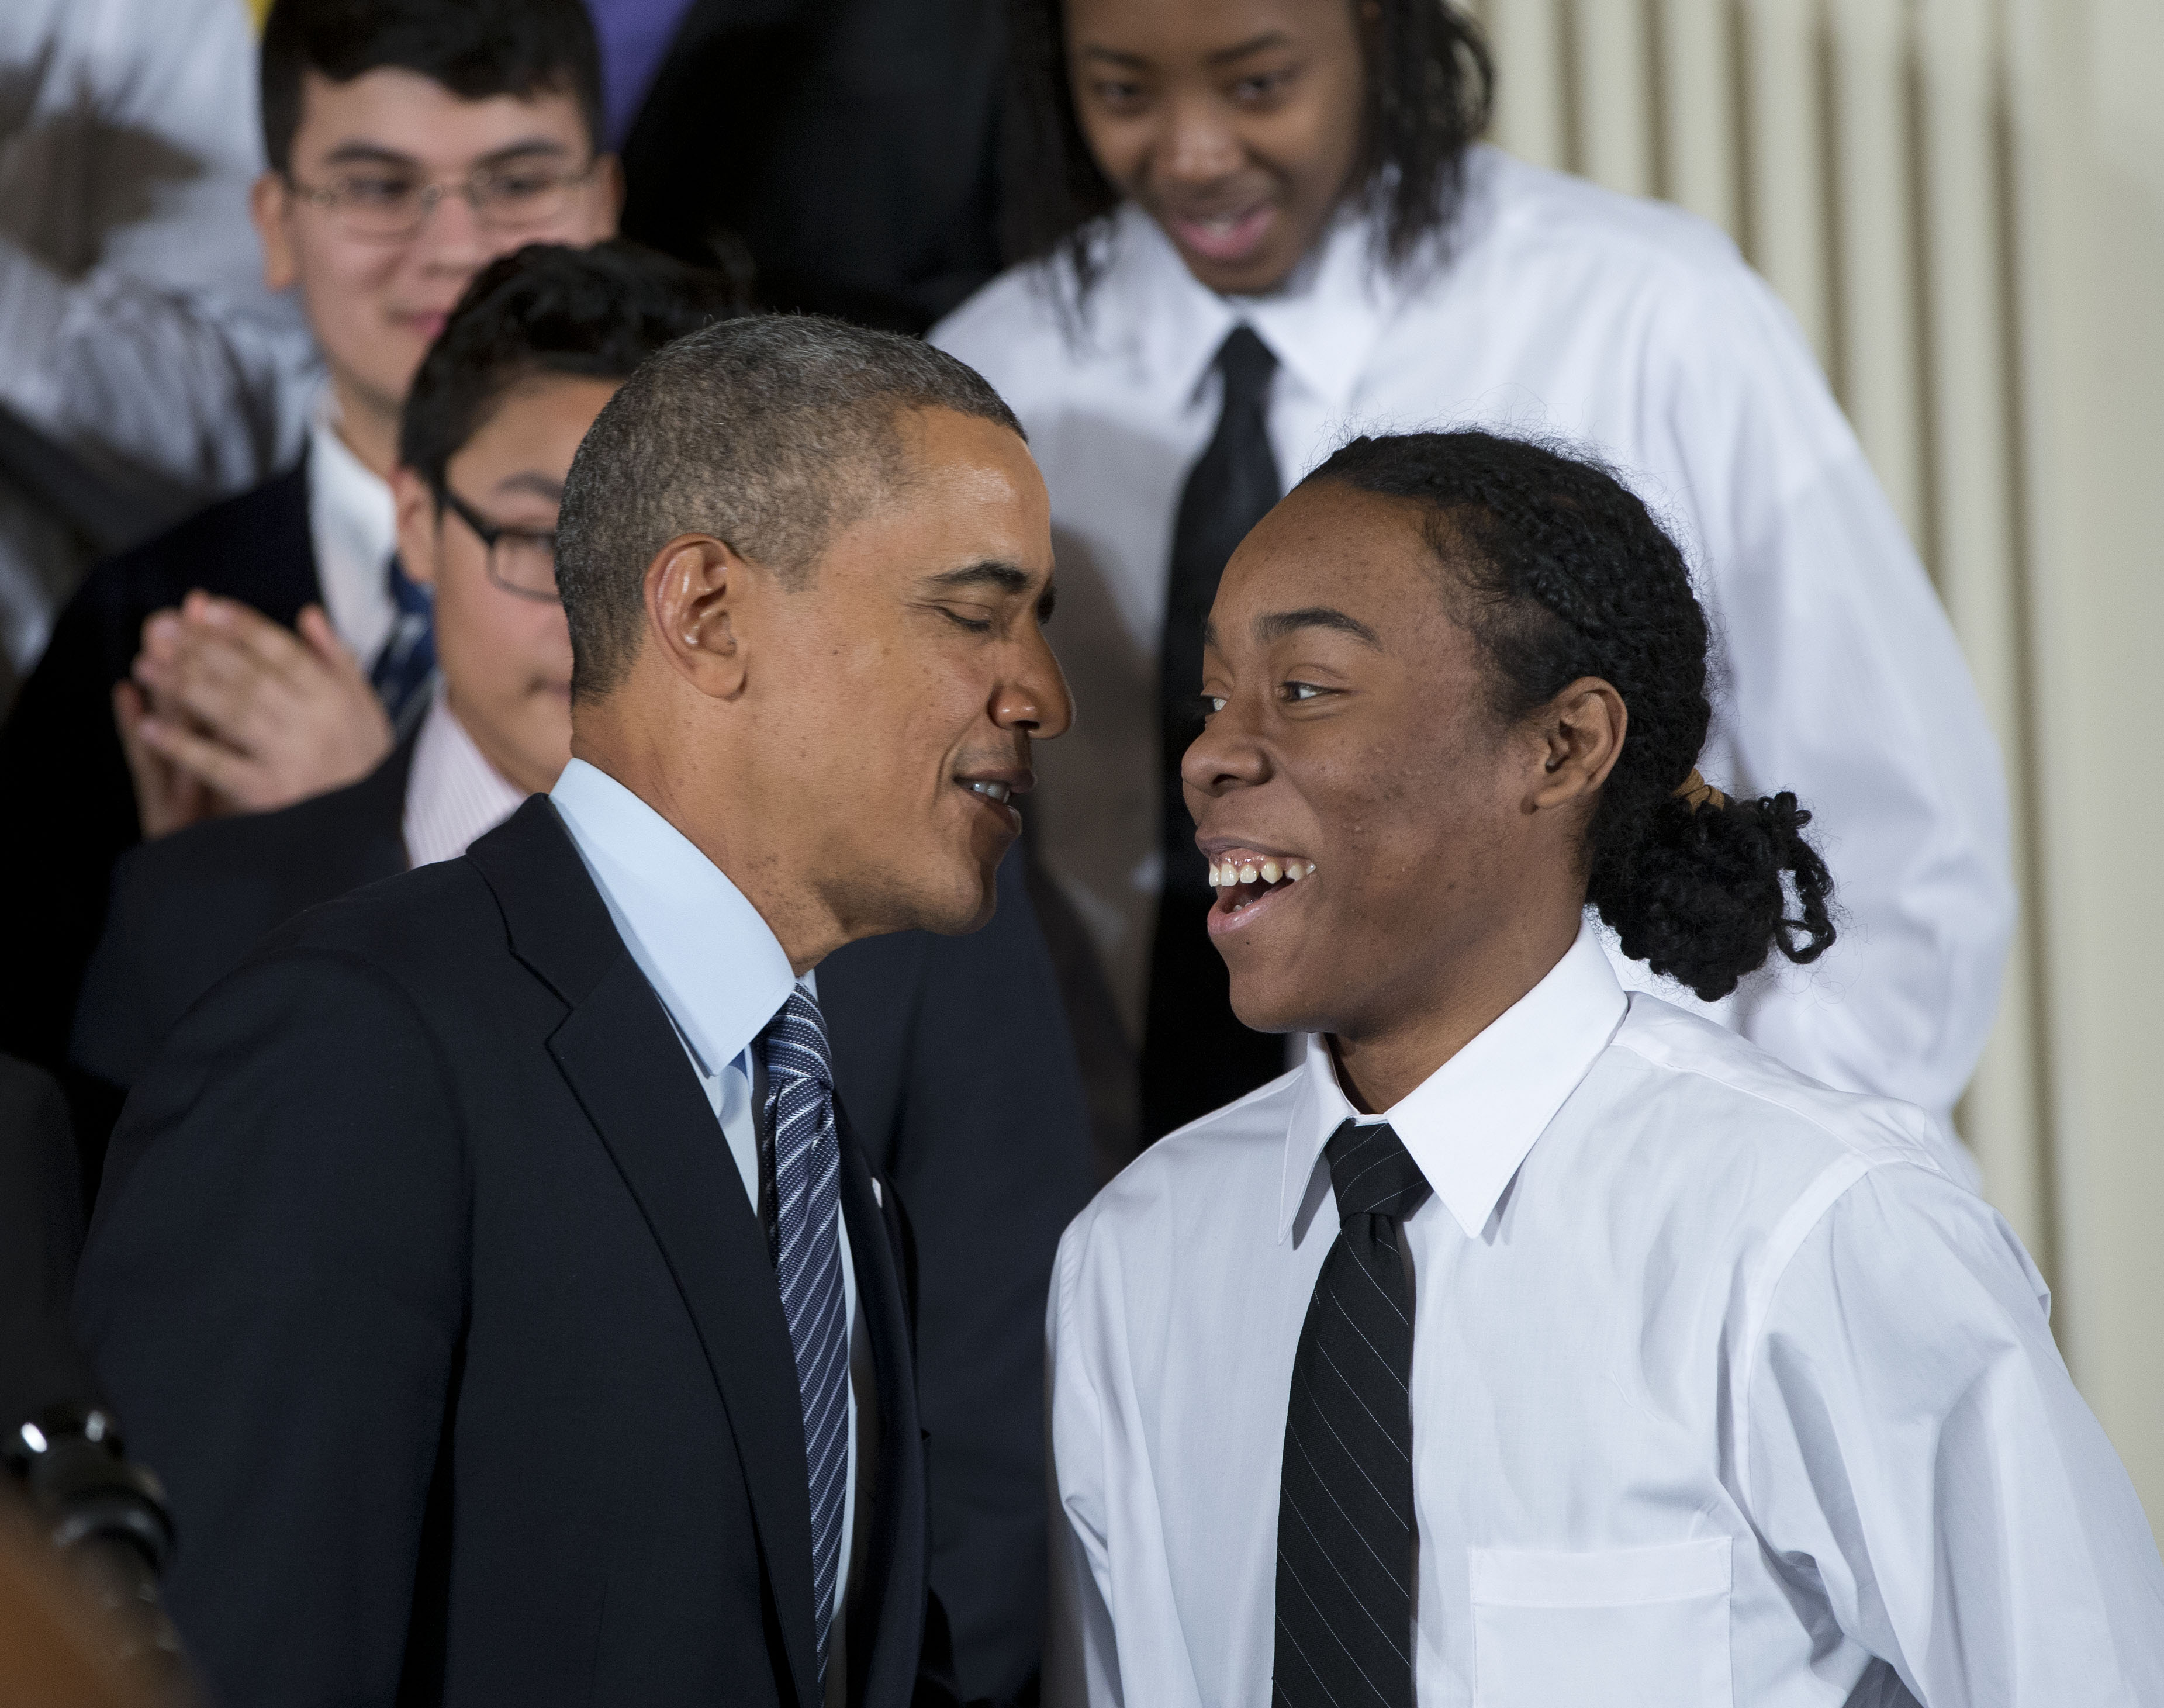 President Barack Obama speaks with Christian Champagne, 18, a senior at Hyde Park Career Academy in Chicago, who introduced him before launching a new initiative to provide greater opportunities for young black and Hispanic men called 'My Brother's Keeper' Thursday, Feb. 27, 2014, in the East Room of the White House in Washington.